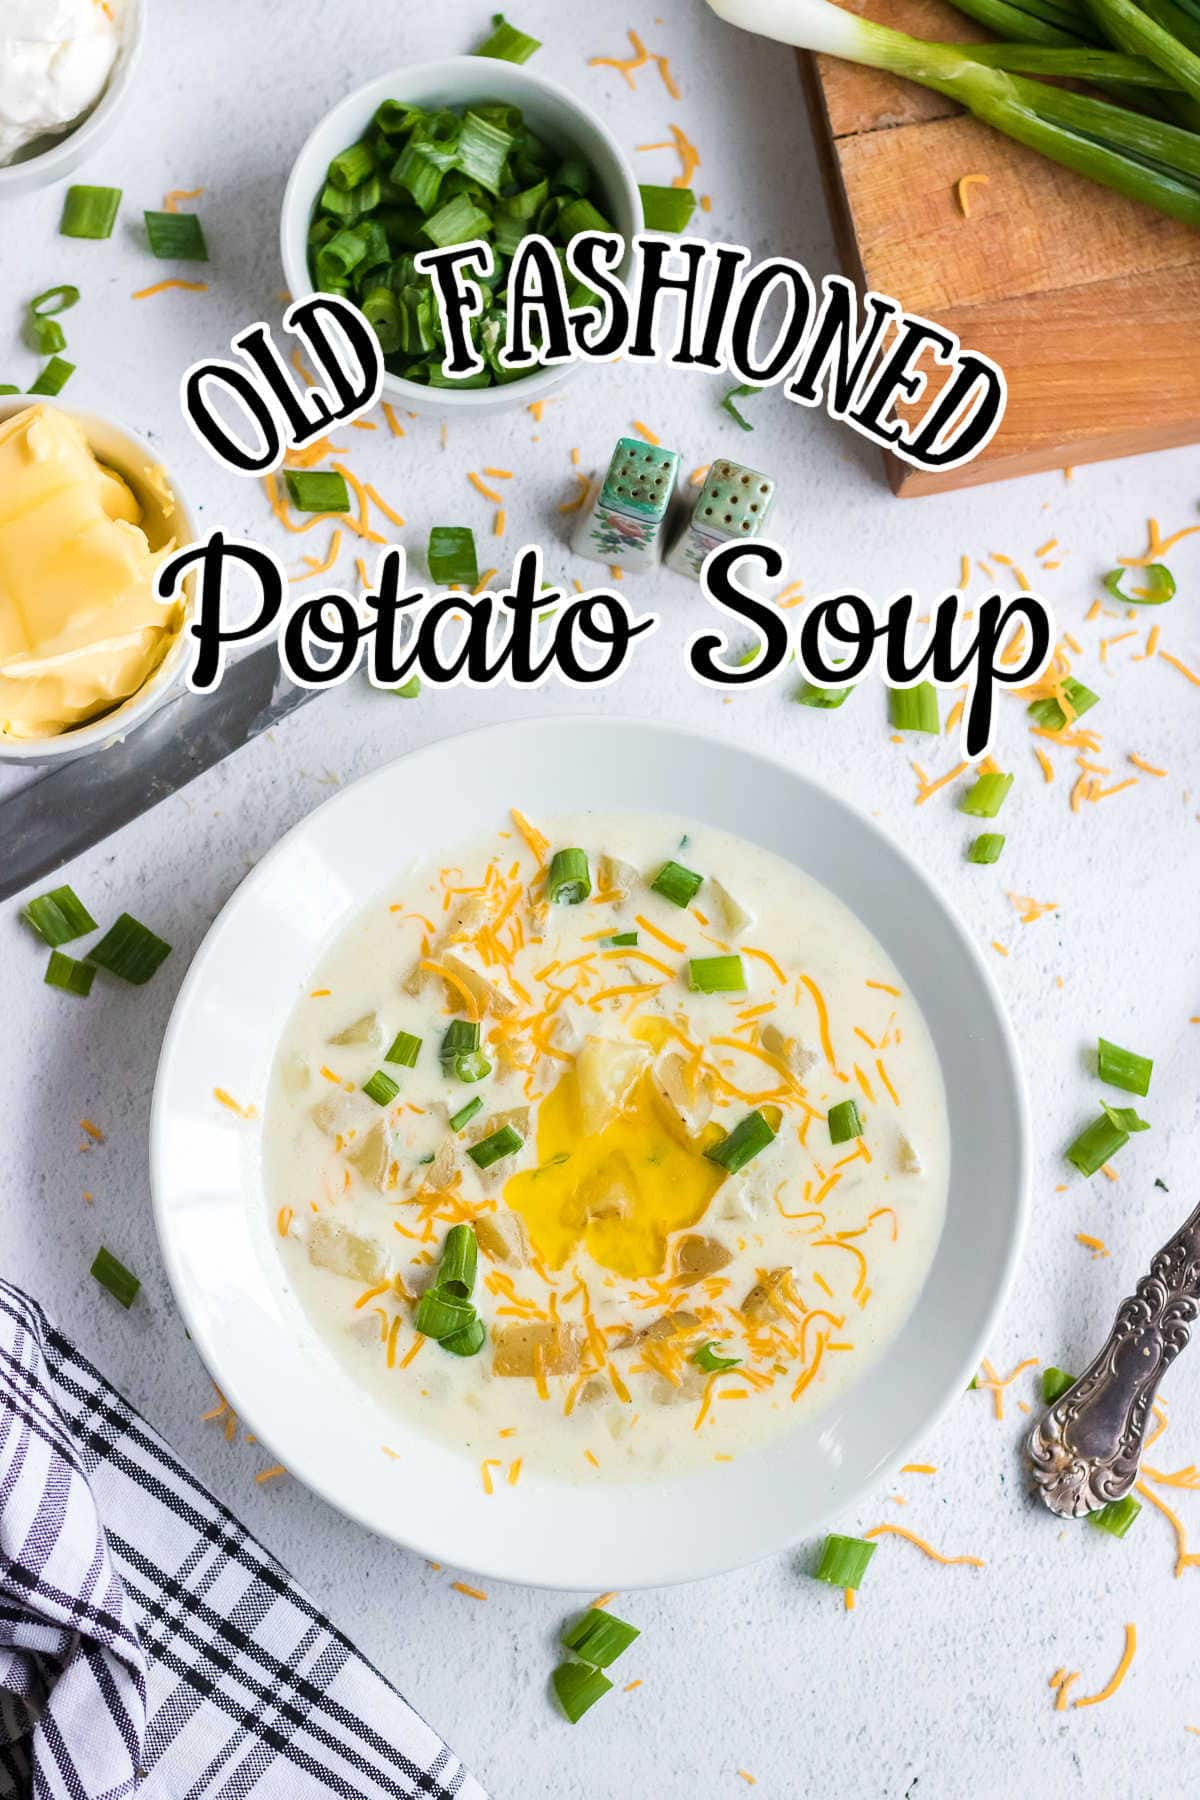 Bowl of creamy soup with butter melting on top in a white bowl. Title text overlay.